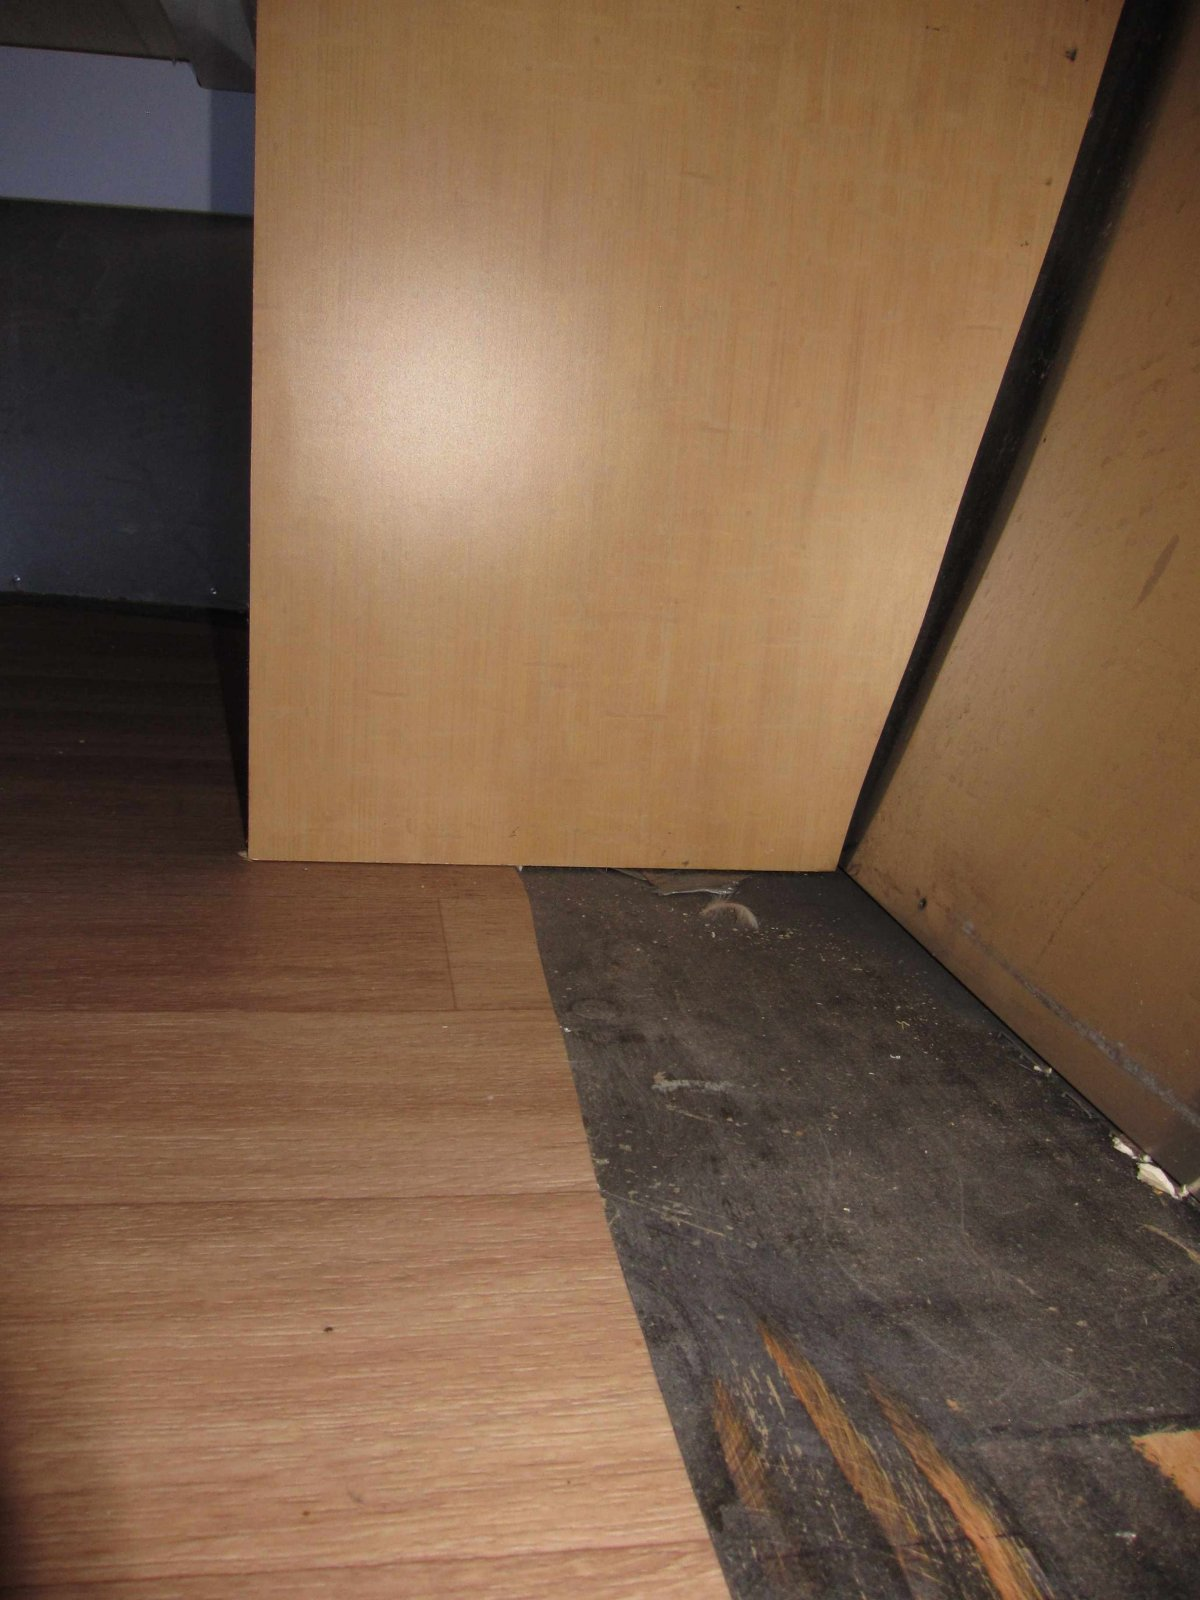 Click image for larger version  Name:Front of the trailer under the bed.jpg Views:57 Size:230.5 KB ID:222098